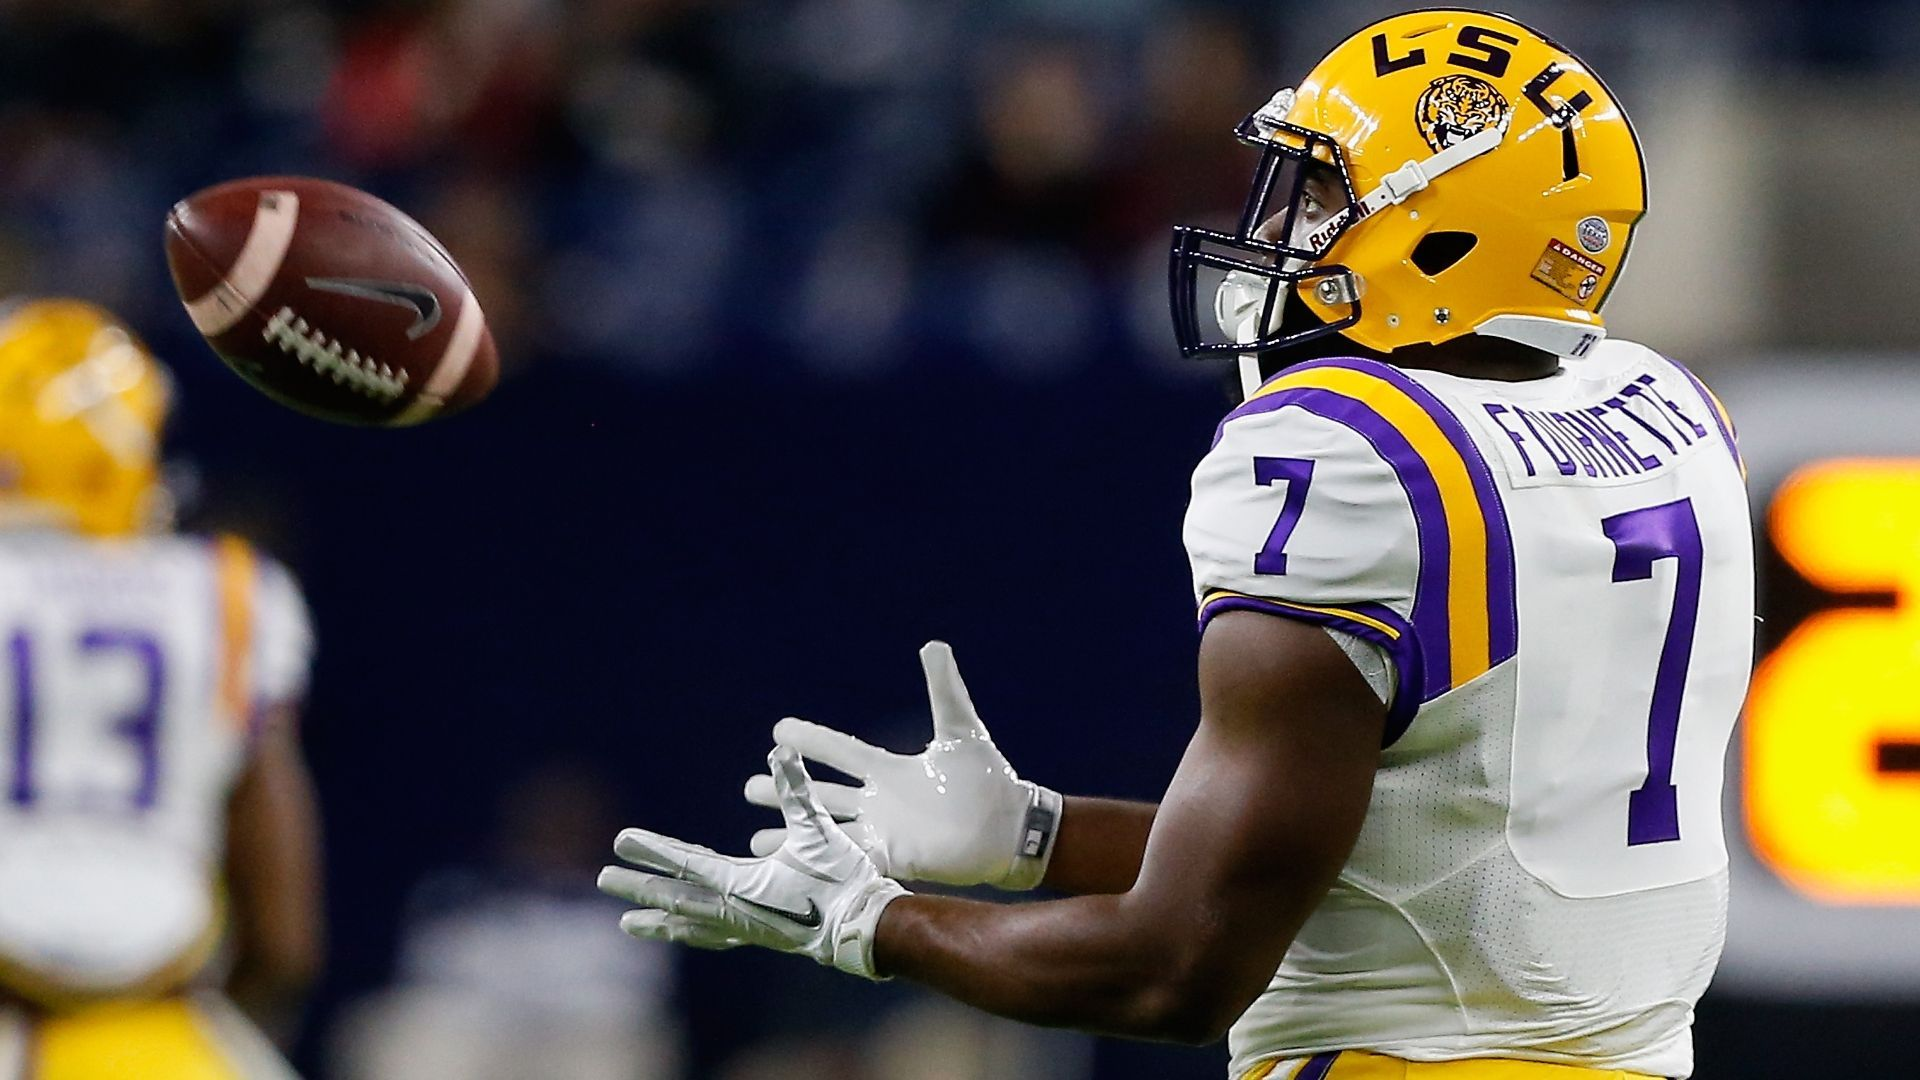 Fournette The Great Backs Have Patience Lsu Tigers Football Lsu Marcus Spears